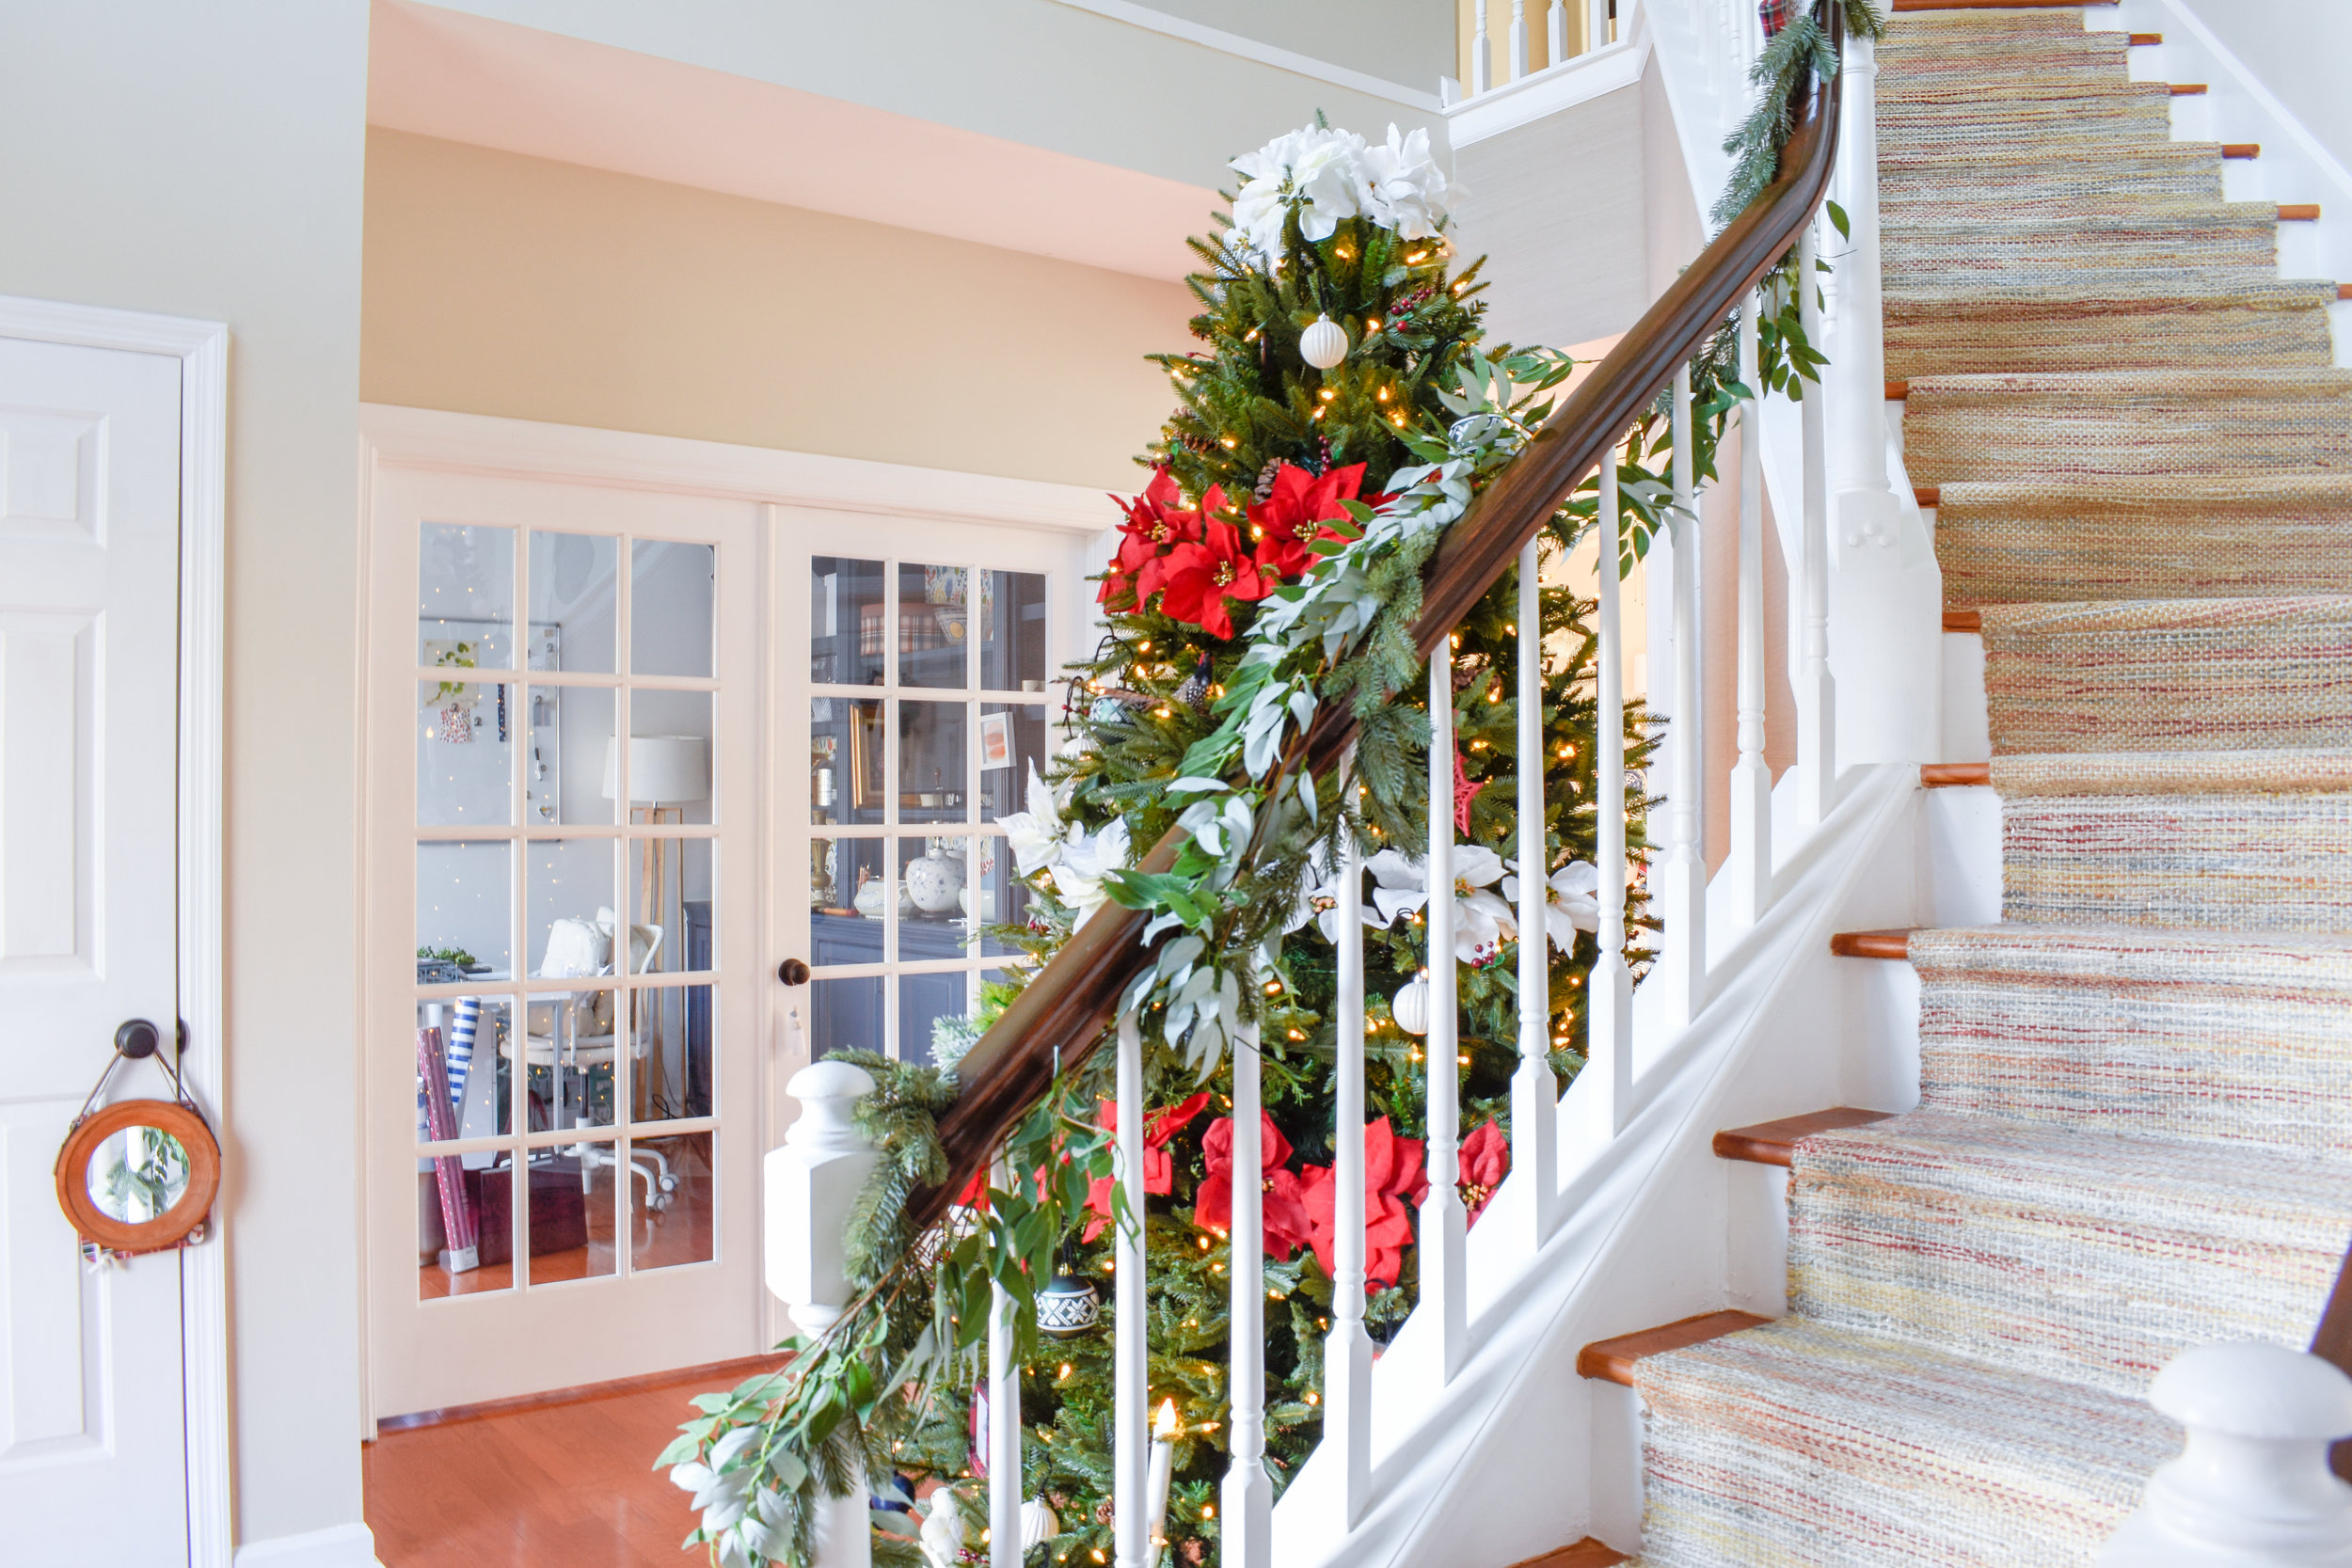 This year, we decided to put the Christmas tree in our foyer and I love it! This otherwise unused and blank space gets a fresh pop with the twirling lights and red and white color scheme. #redchristmastree #poinsettiatree